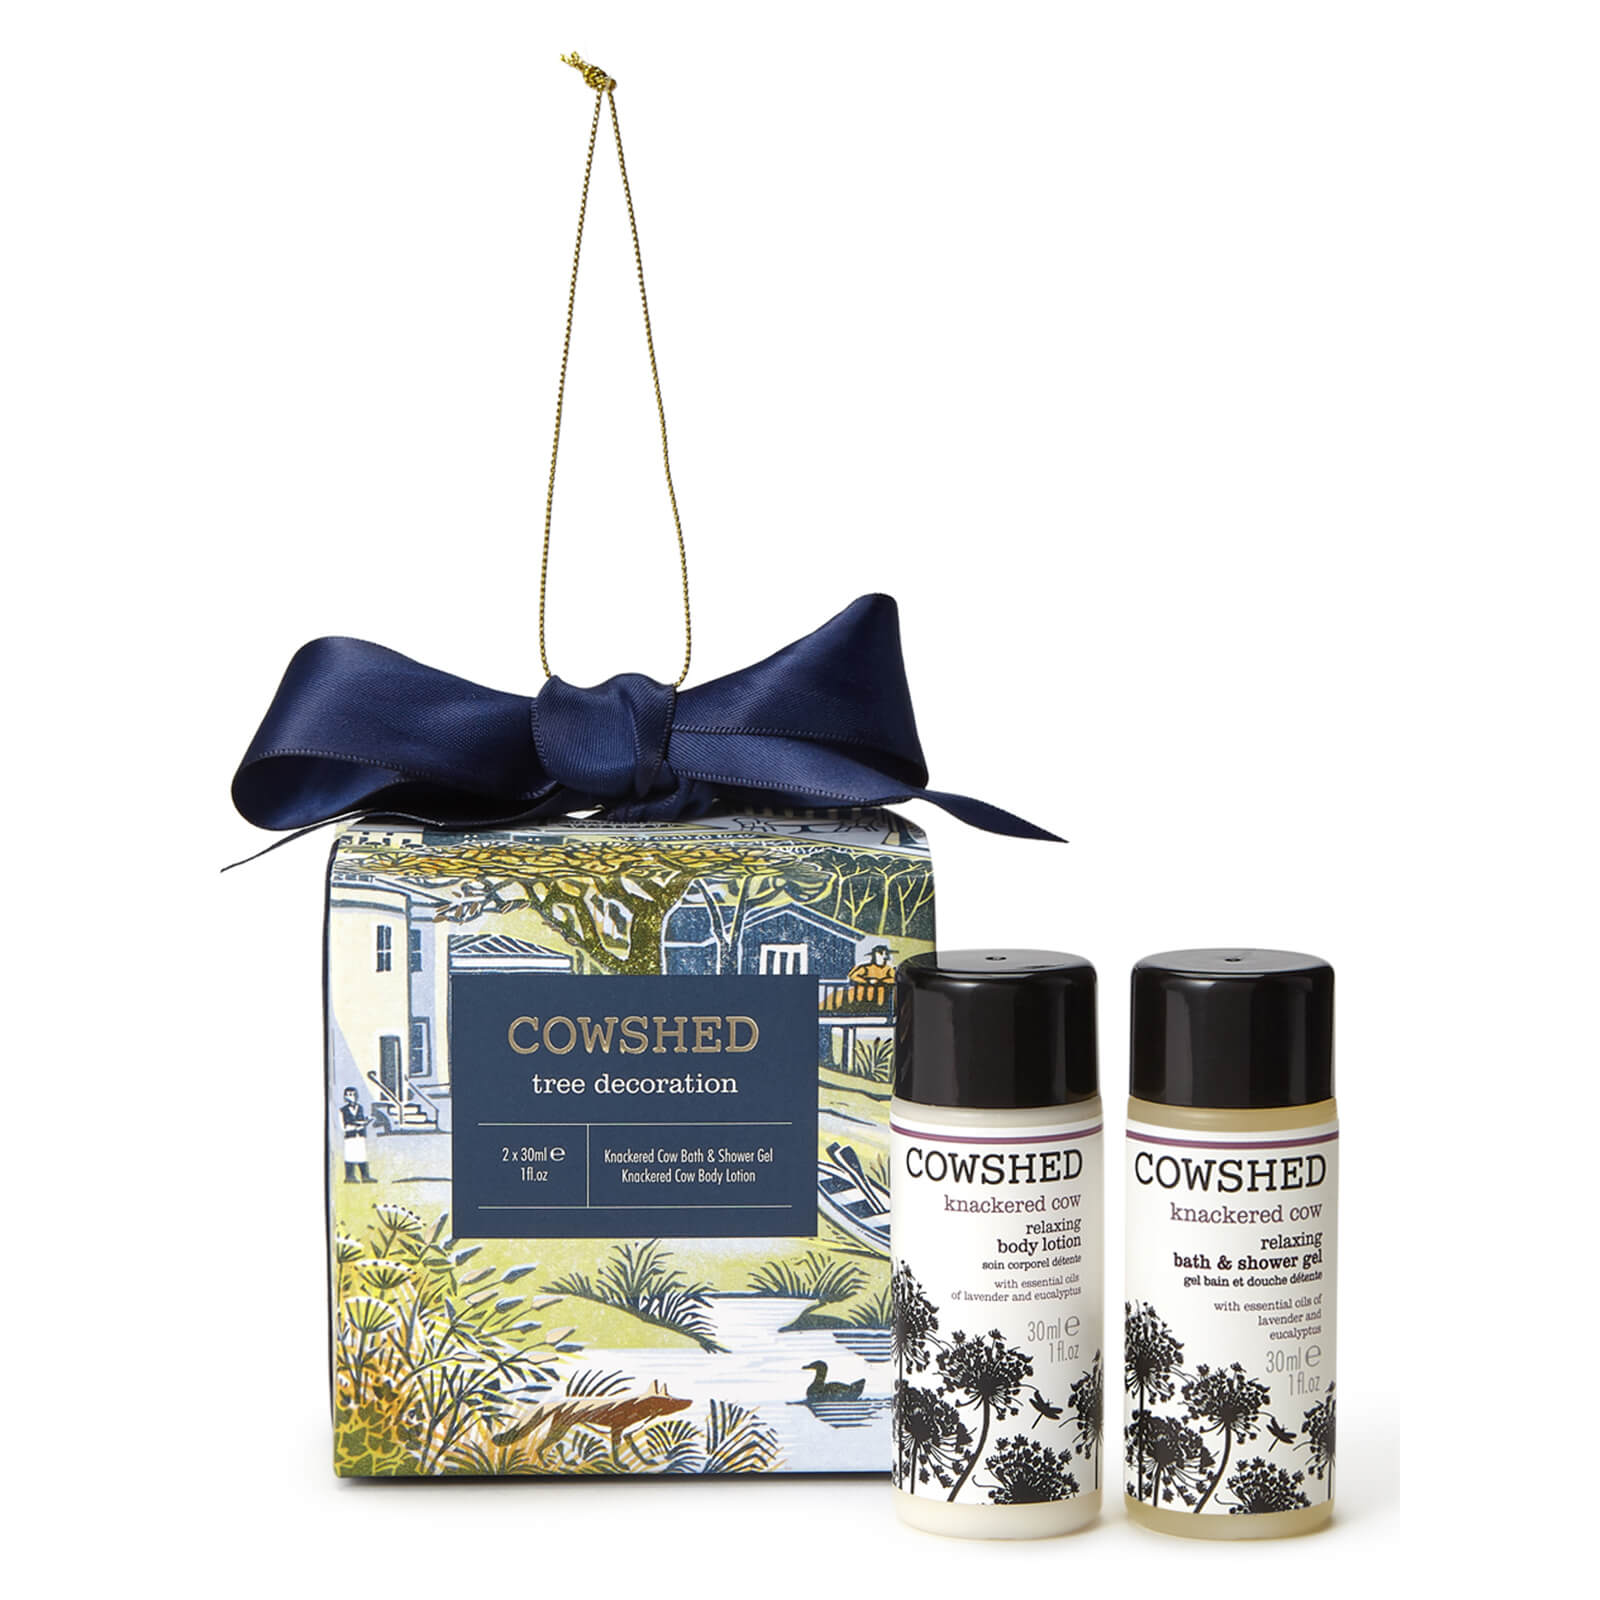 Cowshed Tree Decoration Bath and Body Gift Set